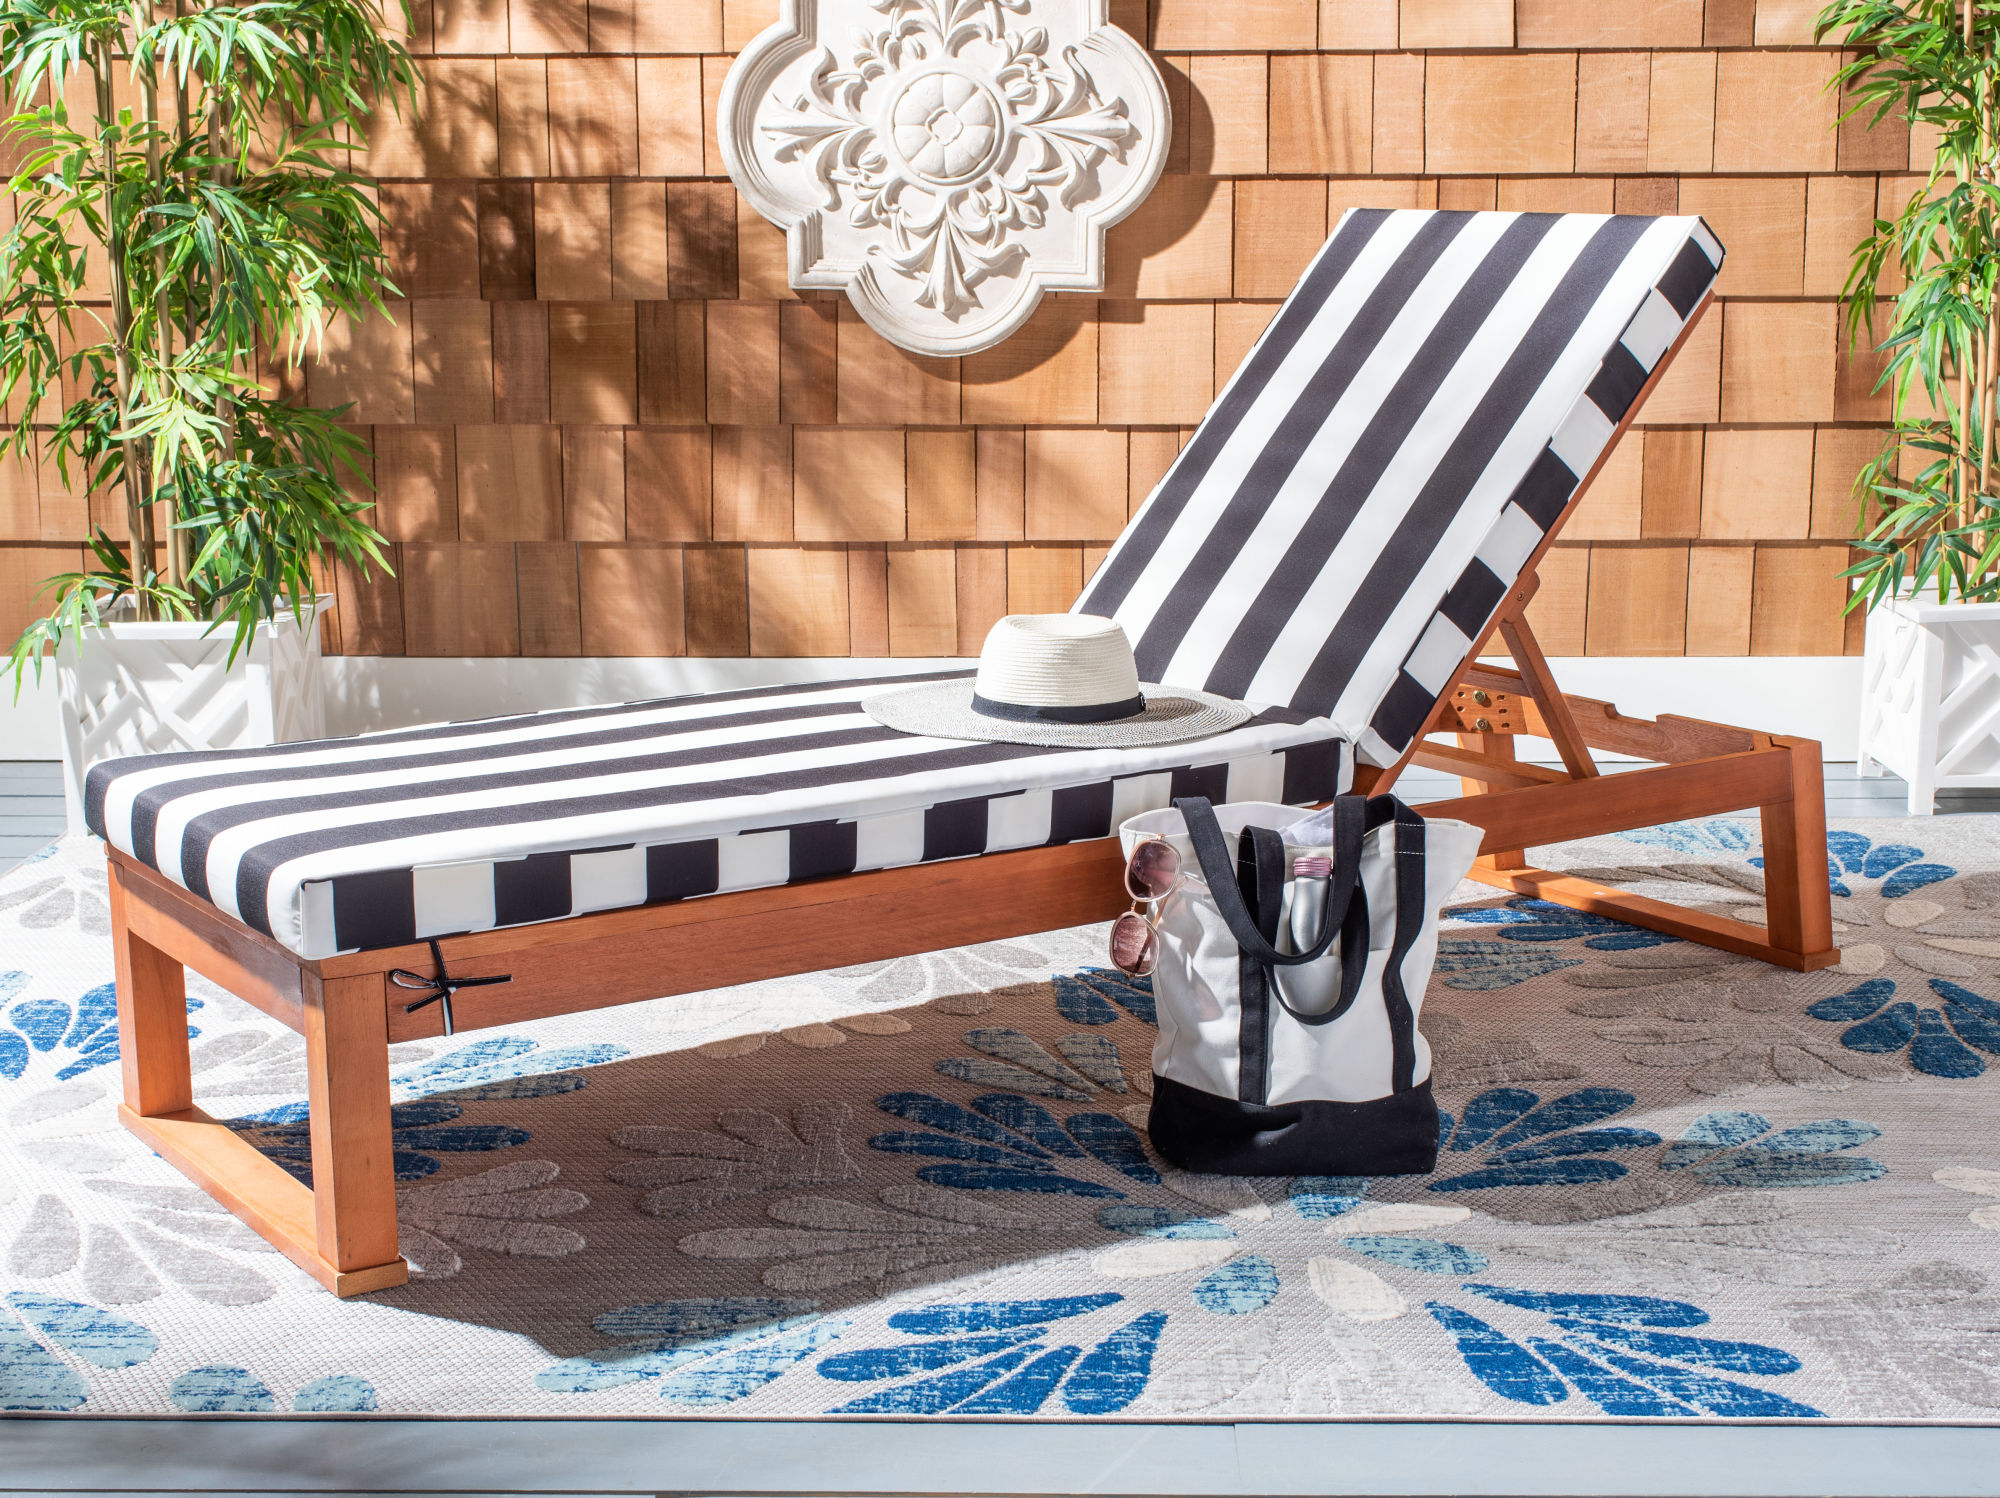 Solano Sunlounger on Safavieh Outdoor Living Solano Sunlounger id=29680